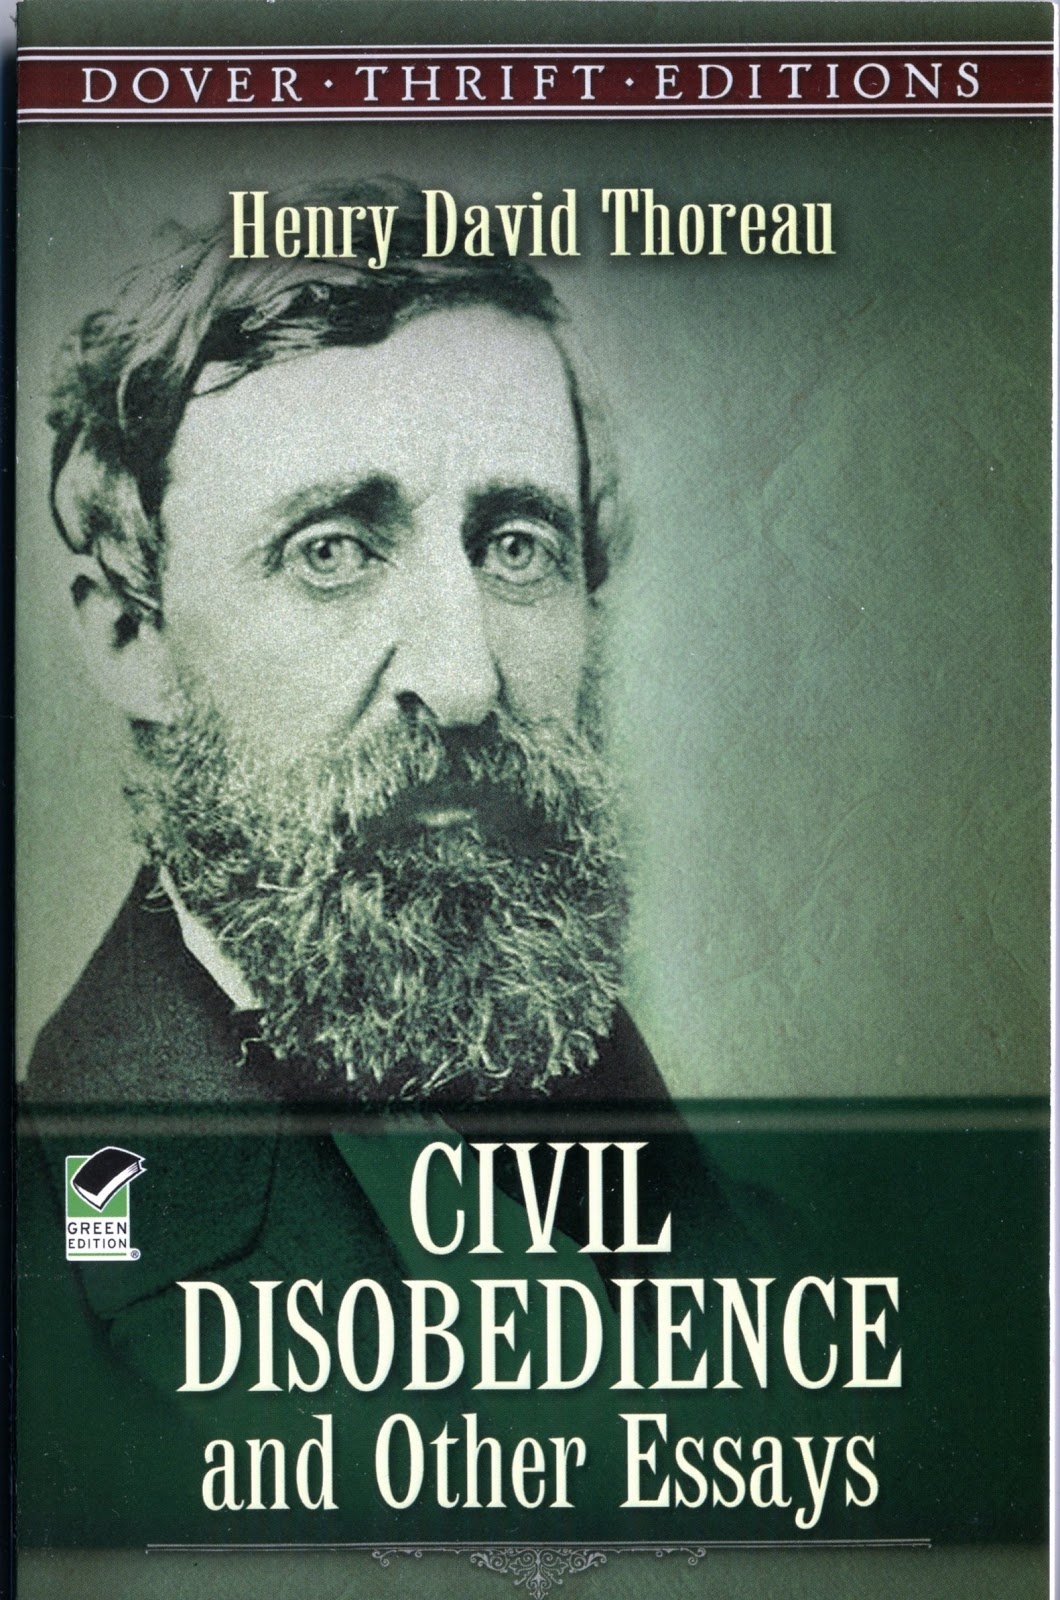 Civil disobedience essay